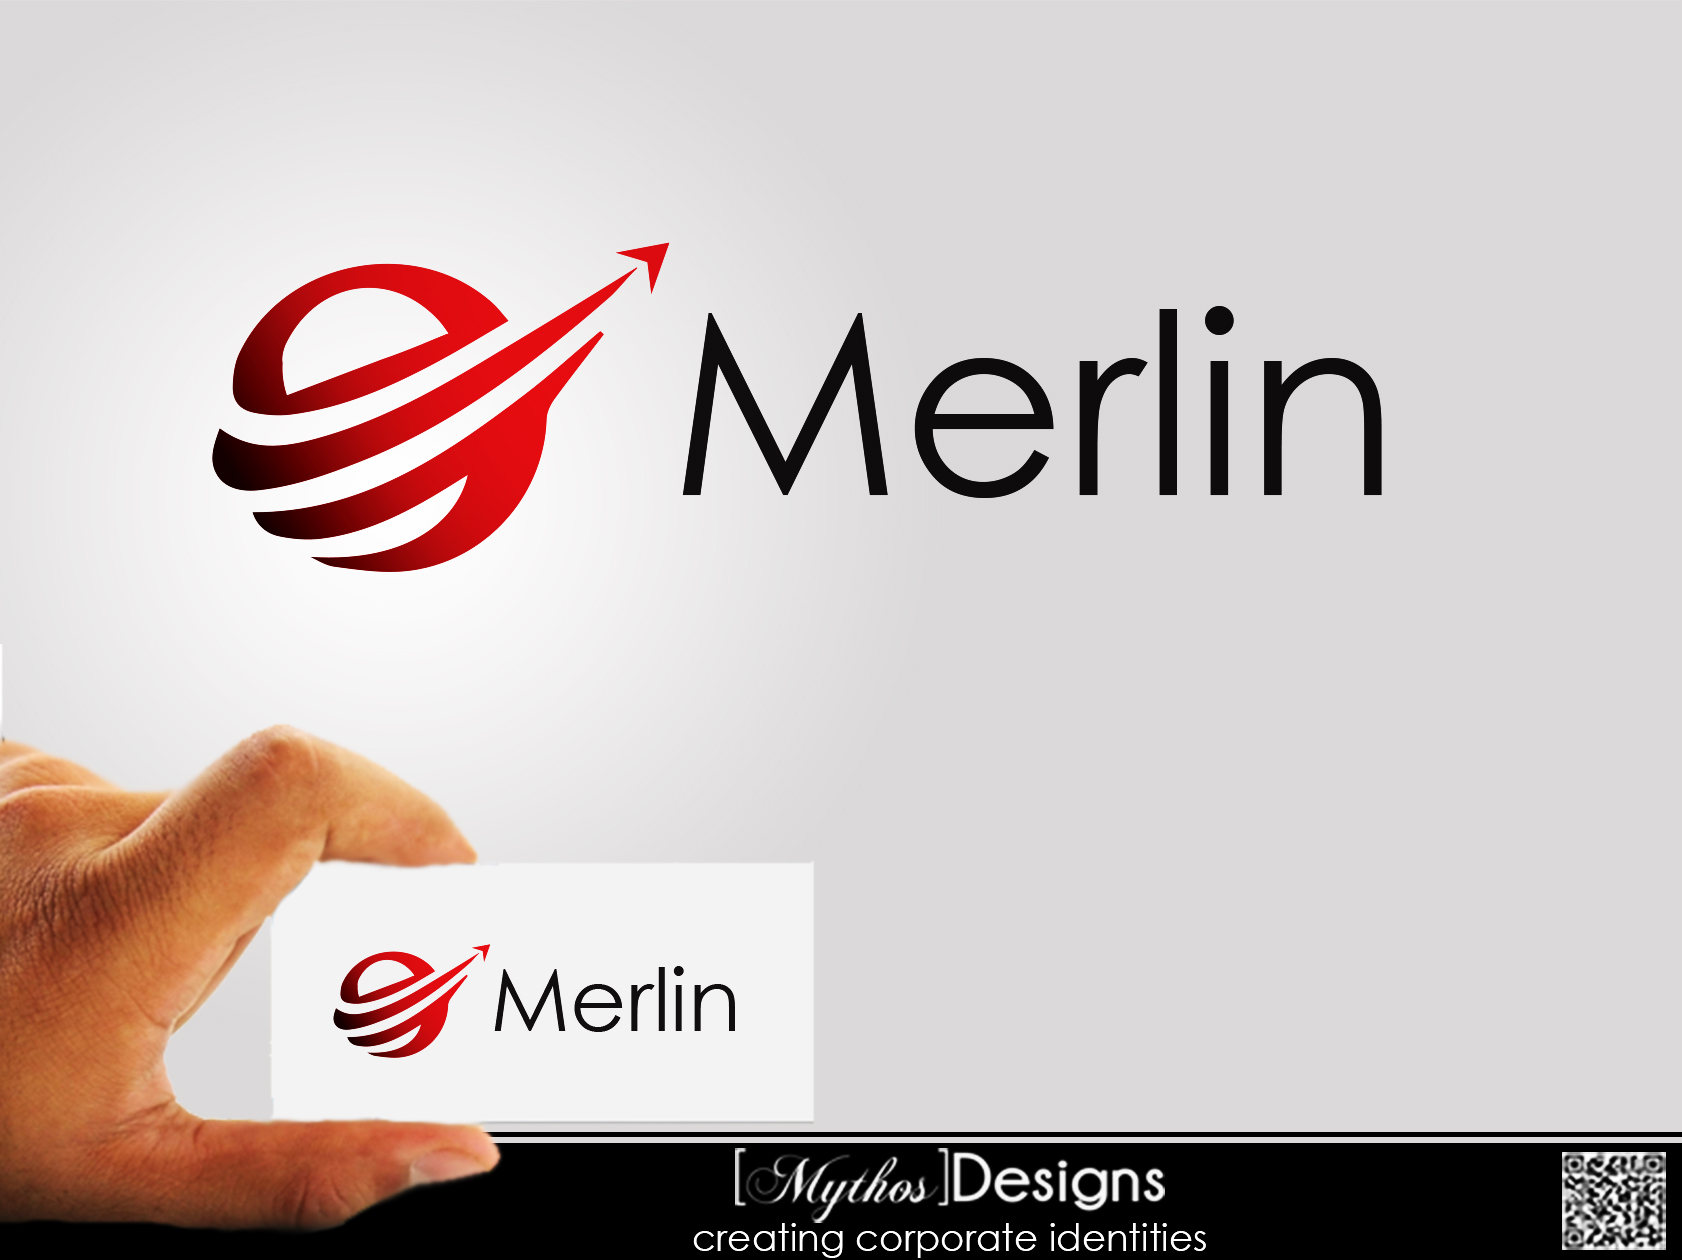 Logo Design by Mythos Designs - Entry No. 25 in the Logo Design Contest Imaginative Logo Design for Merlin.